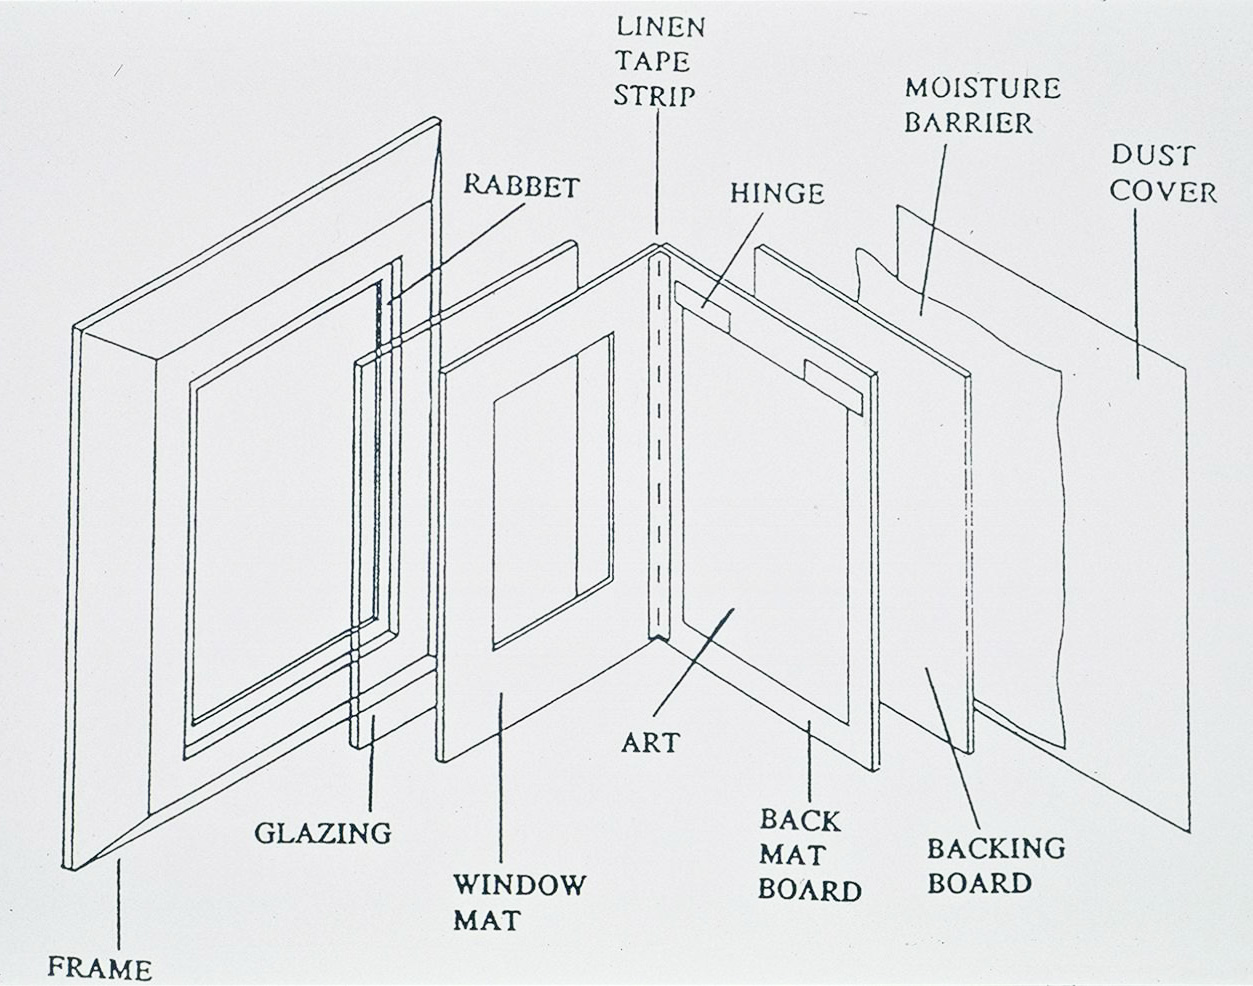 parts of a window frame diagram toyota fujitsu ten 86100 wiring preservation guidelines for matting and framing